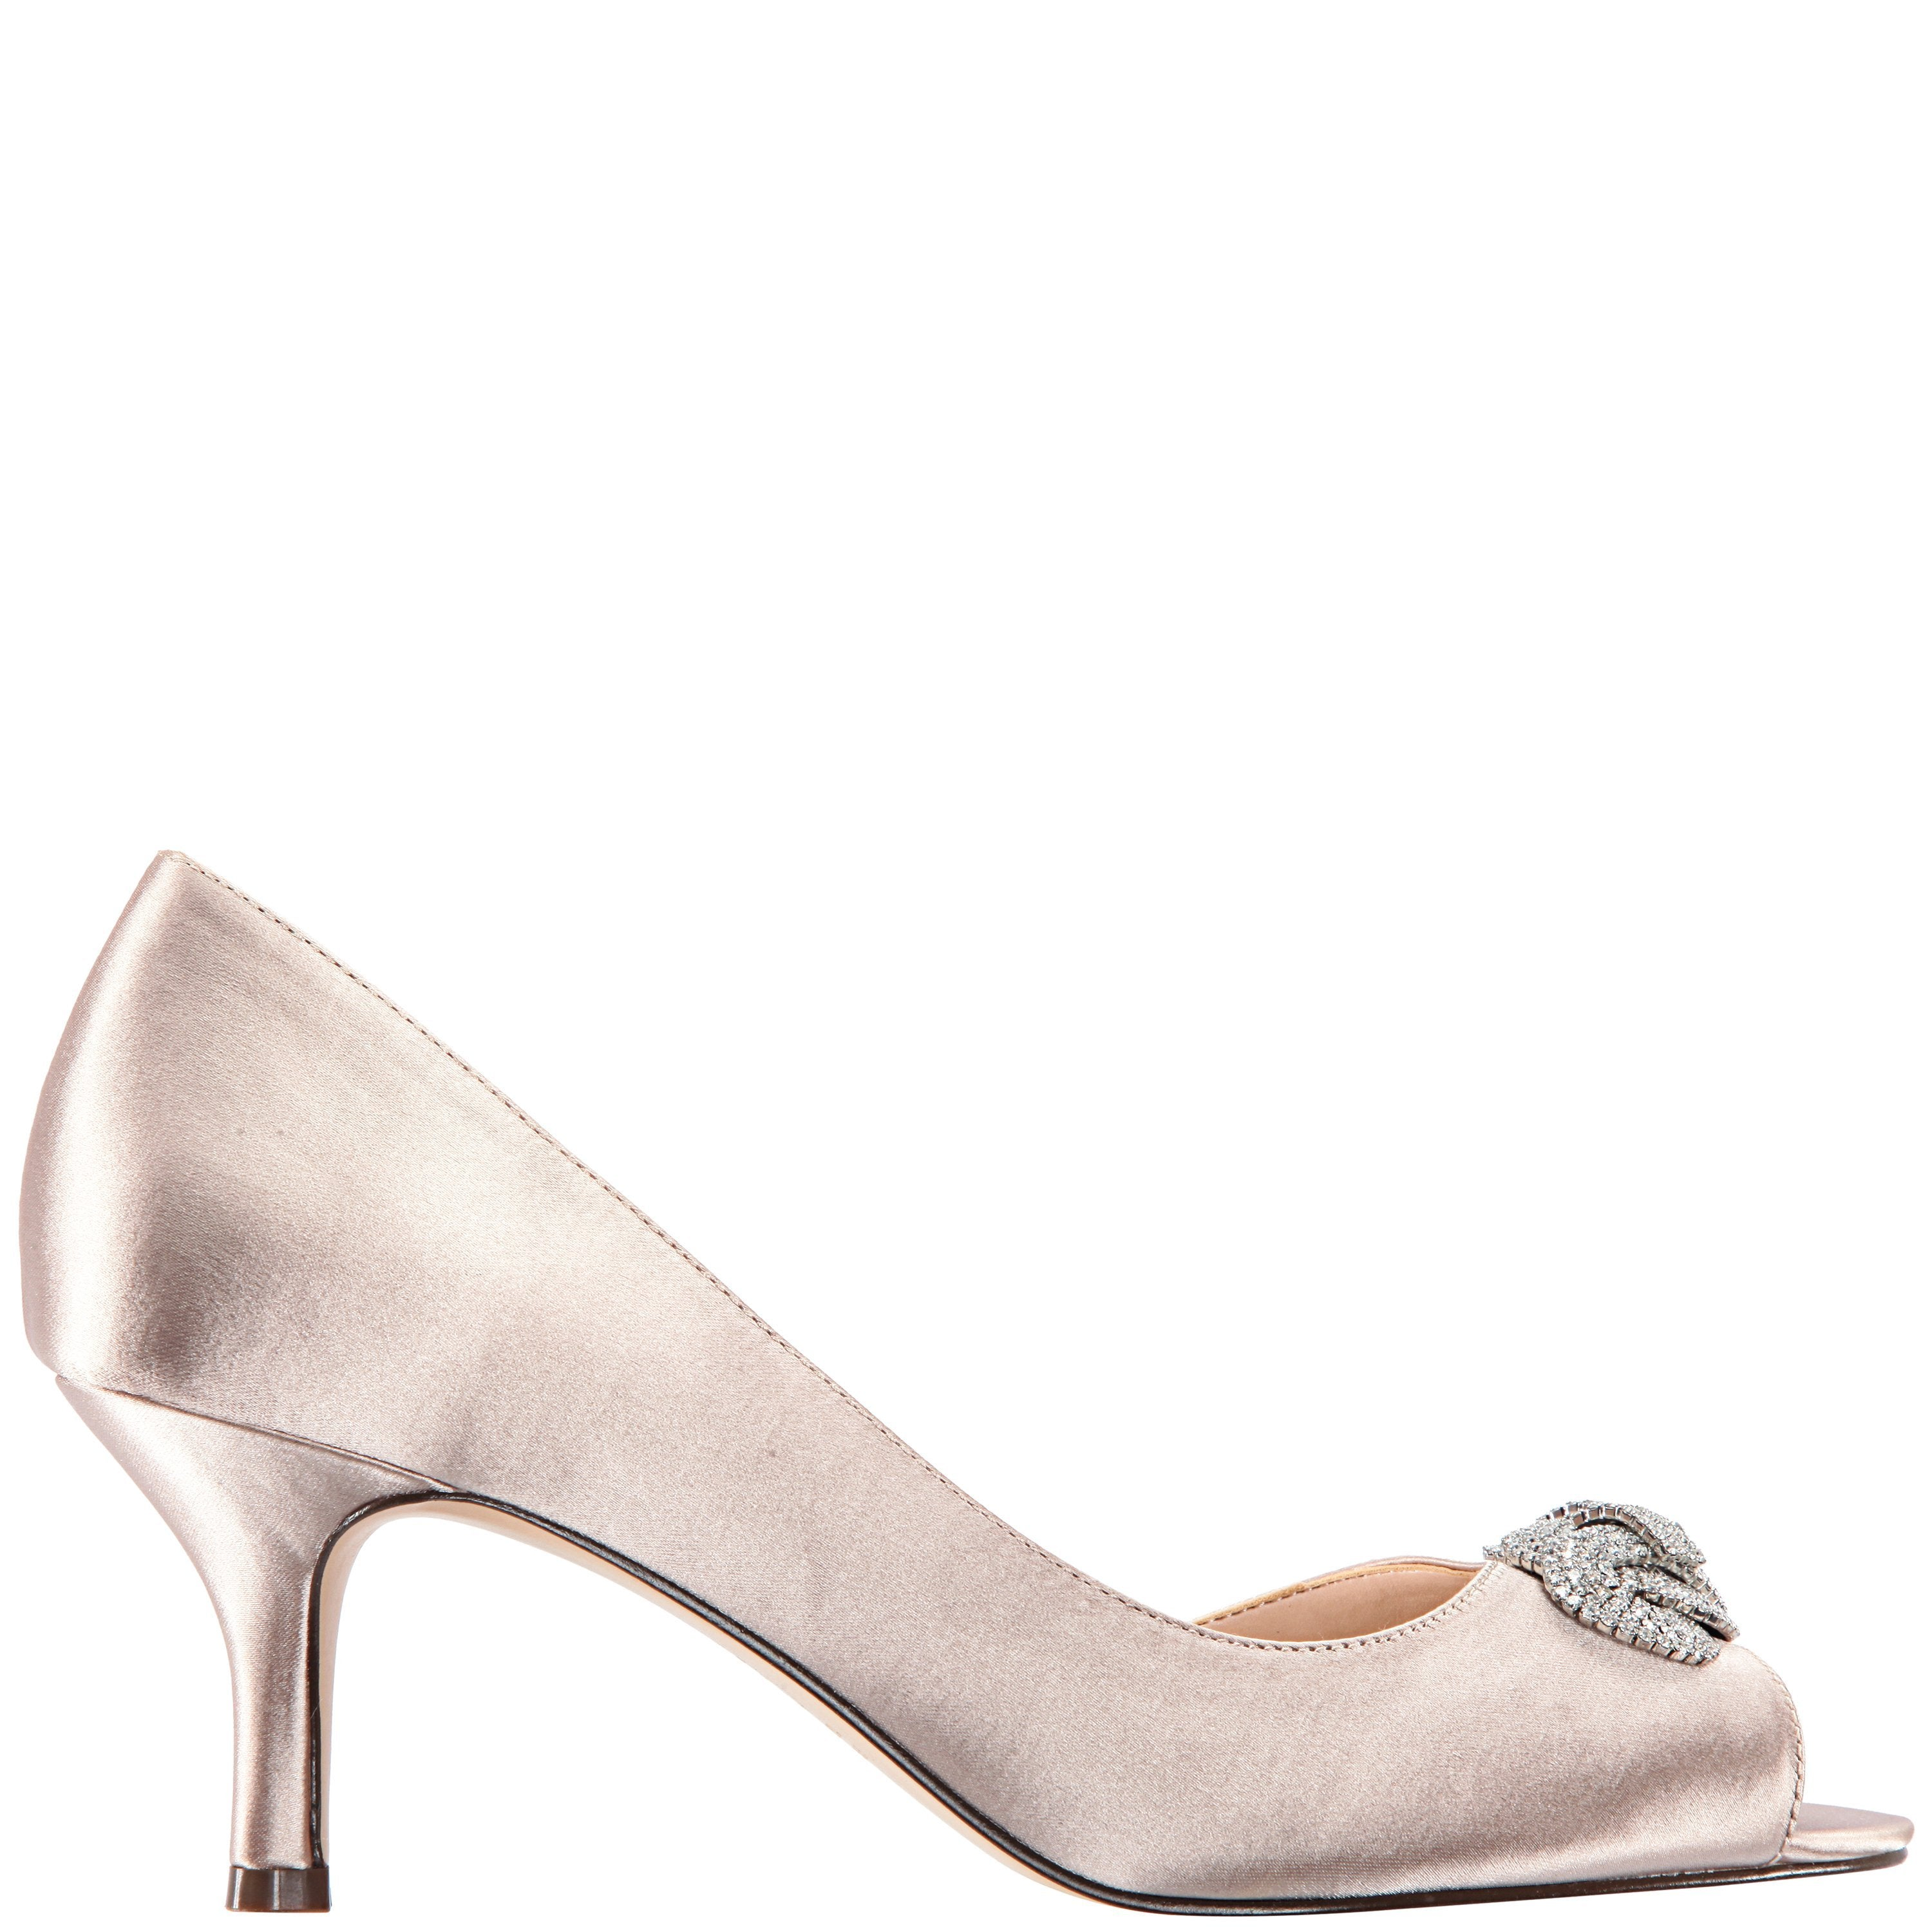 MADOLYN-TAUPE SATIN - TAUPE